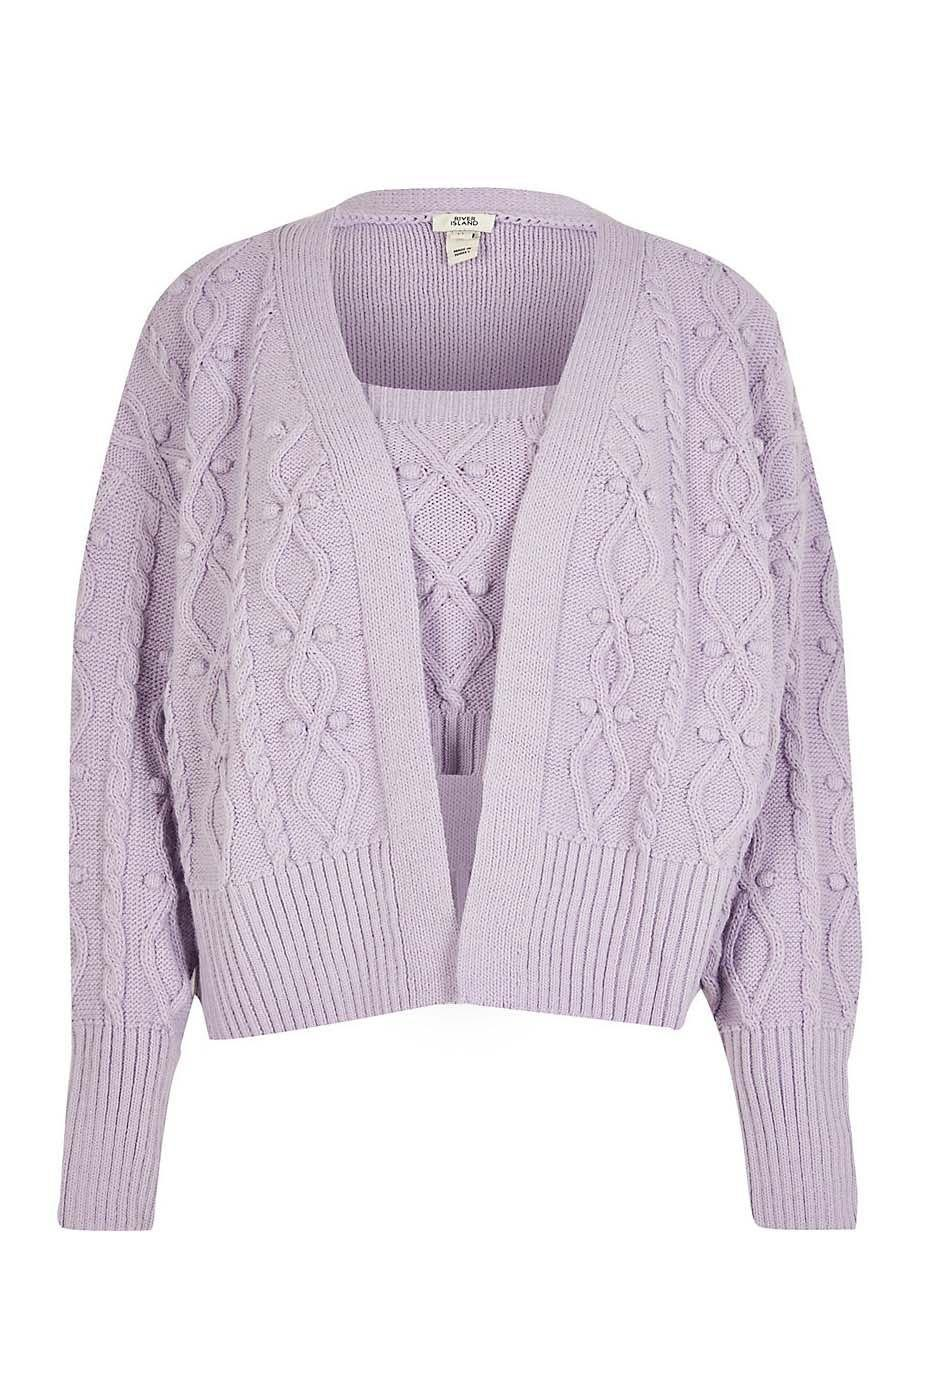 """<p><a class=""""link rapid-noclick-resp"""" href=""""https://go.redirectingat.com?id=127X1599956&url=https%3A%2F%2Fwww.riverisland.com%2Fp%2Fcream-knitted-cardi-and-bralet-set-790470&sref=https%3A%2F%2Fwww.harpersbazaar.com%2Fuk%2Ffashion%2Fwhat-to-wear%2Fg34860037%2Fthe-best-cardigan-sets-and-coords%2F"""" rel=""""nofollow noopener"""" target=""""_blank"""" data-ylk=""""slk:SHOP NOW"""">SHOP NOW</a></p><p>Lilac was a huge trend over the summer but River Island hasn't left it behind. This cable knit cardi and bralet proves exactly why it's a transseasonal colour.</p><p>Light purple knitted cardi and bralet set, £45, <a href=""""https://go.redirectingat.com?id=127X1599956&url=https%3A%2F%2Fwww.riverisland.com%2Fp%2Fcream-knitted-cardi-and-bralet-set-790470&sref=https%3A%2F%2Fwww.harpersbazaar.com%2Fuk%2Ffashion%2Fwhat-to-wear%2Fg34860037%2Fthe-best-cardigan-sets-and-coords%2F"""" rel=""""nofollow noopener"""" target=""""_blank"""" data-ylk=""""slk:River Island"""" class=""""link rapid-noclick-resp"""">River Island</a></p>"""